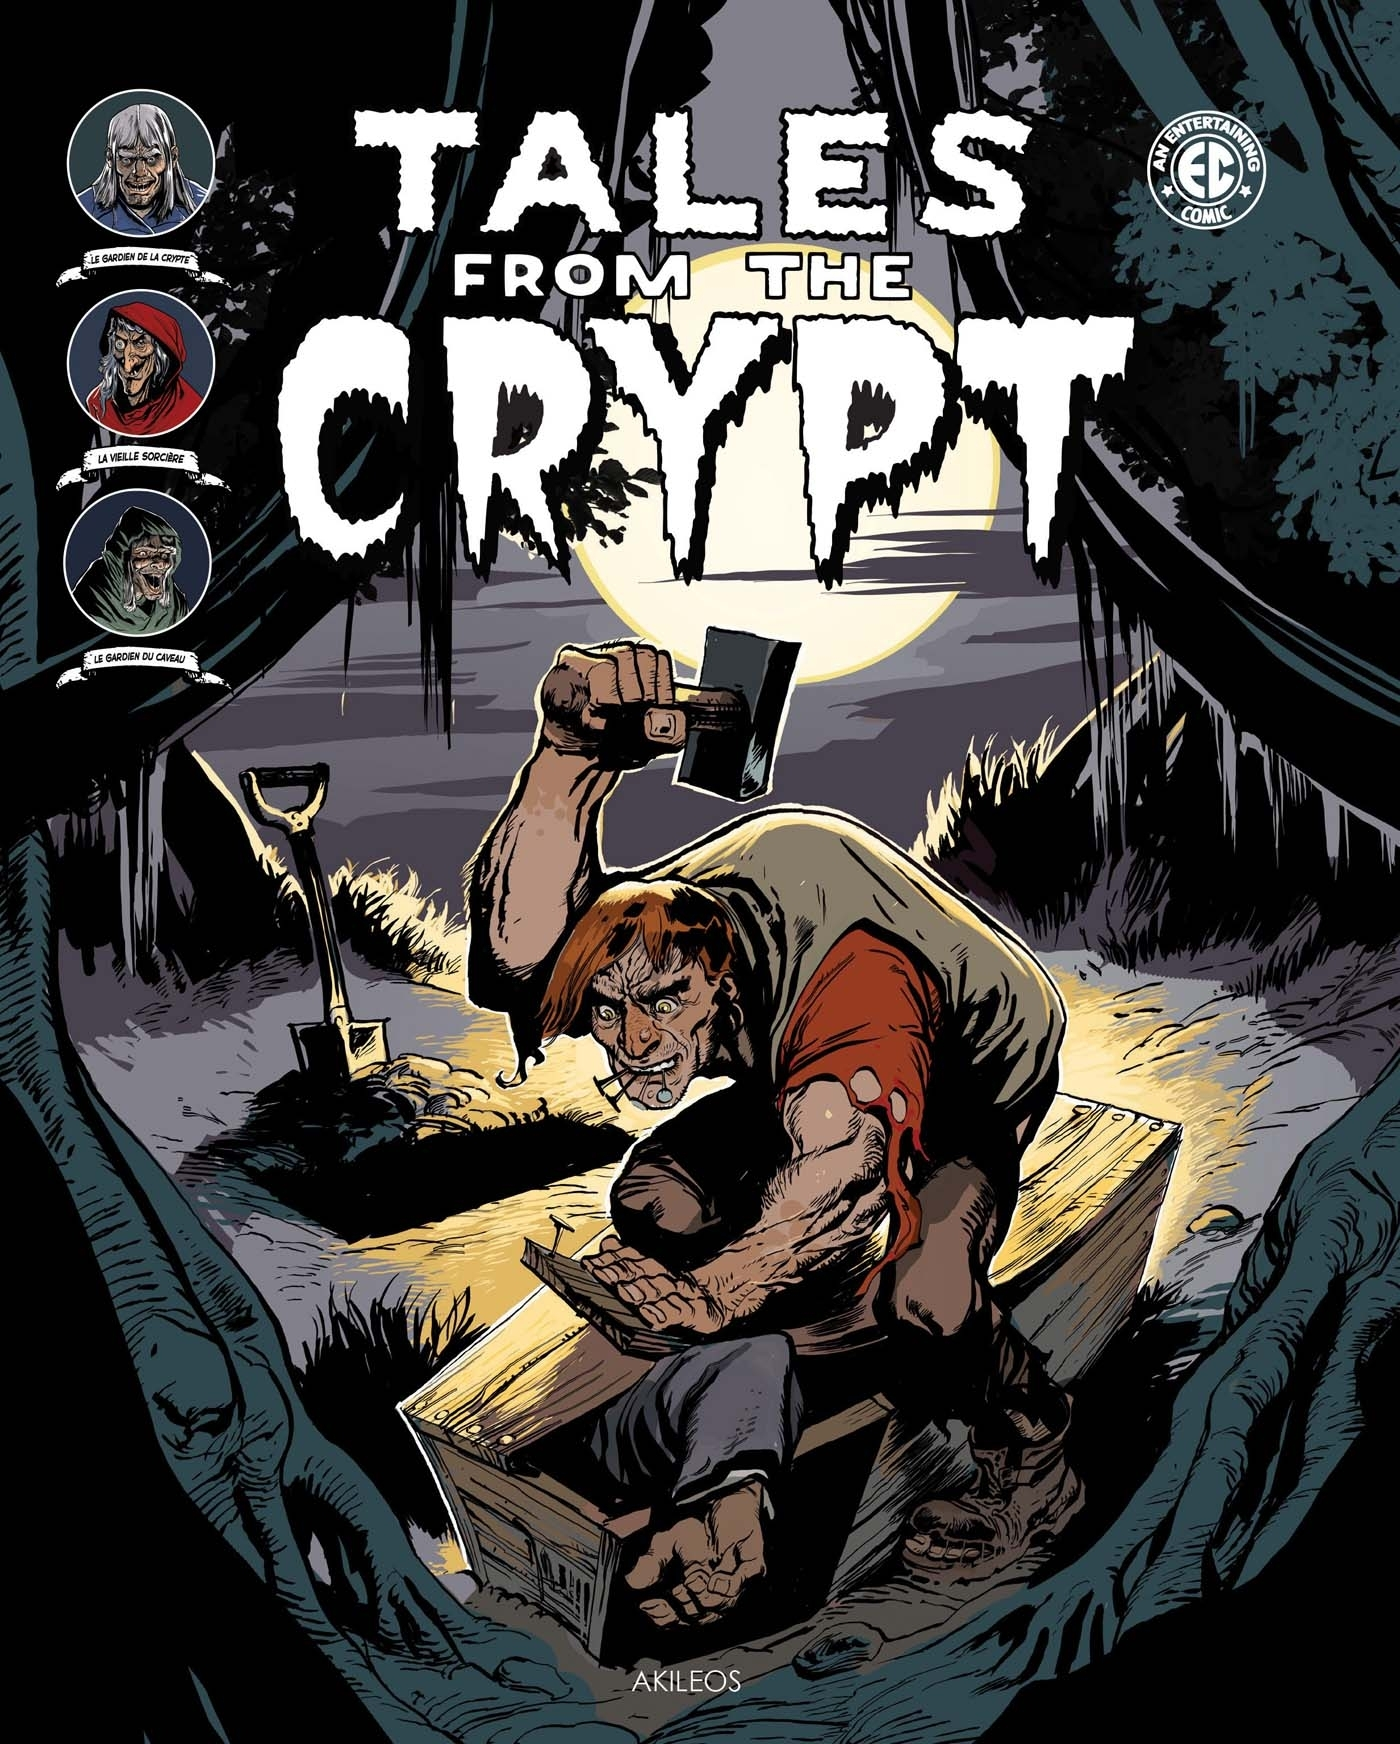 TALES FROM THE CRYPT T3